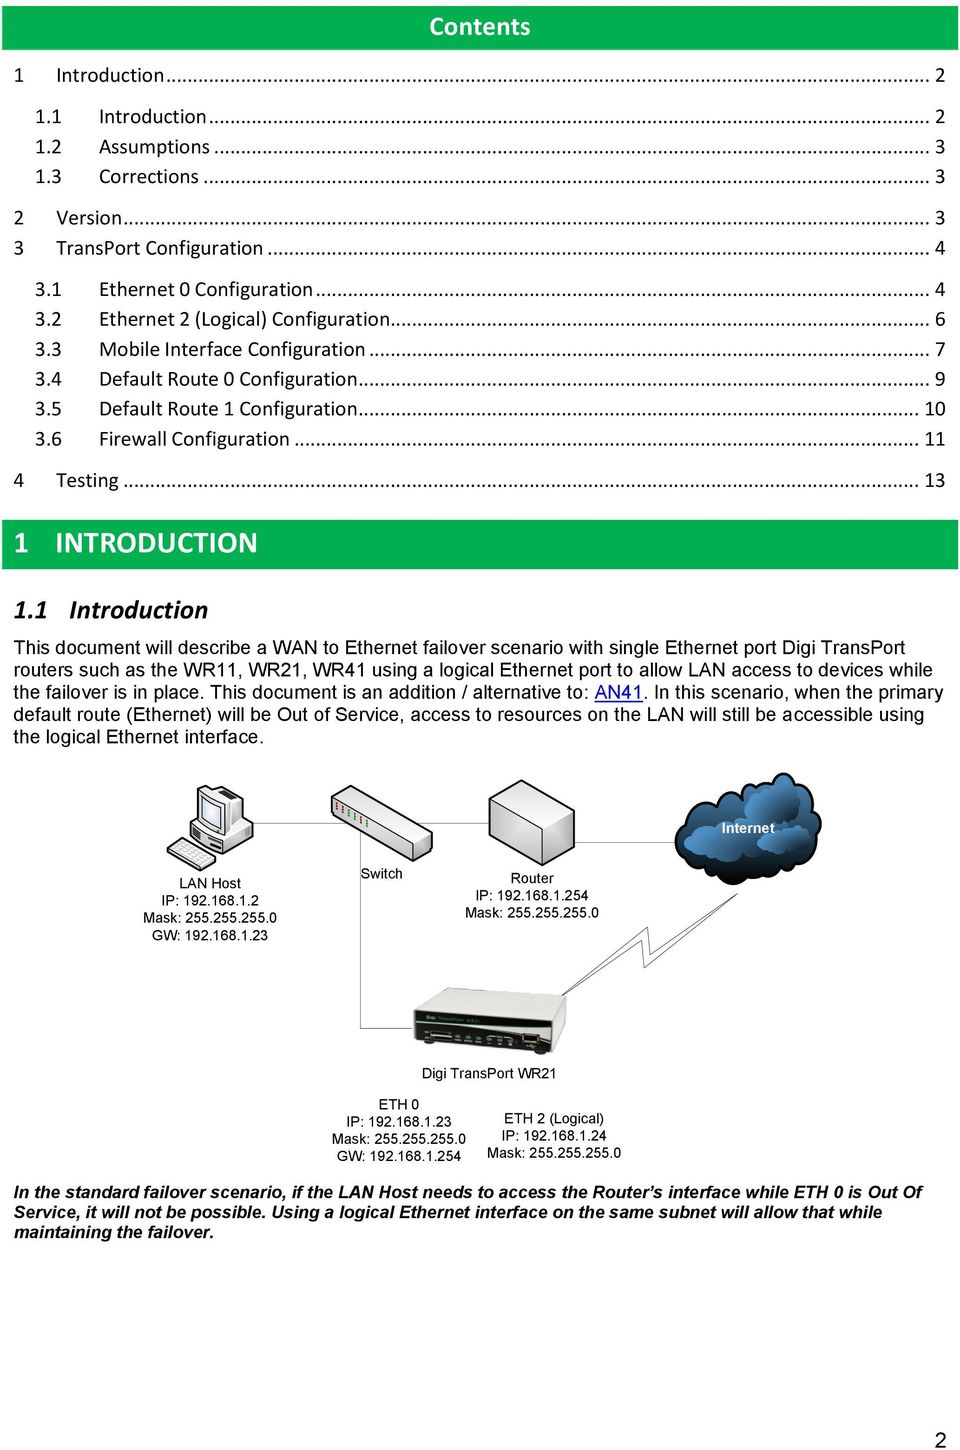 1 Introduction This document will describe a WAN to Ethernet failover scenario with single Ethernet port Digi TransPort routers such as the WR11, WR21, WR41 using a logical Ethernet port to allow LAN